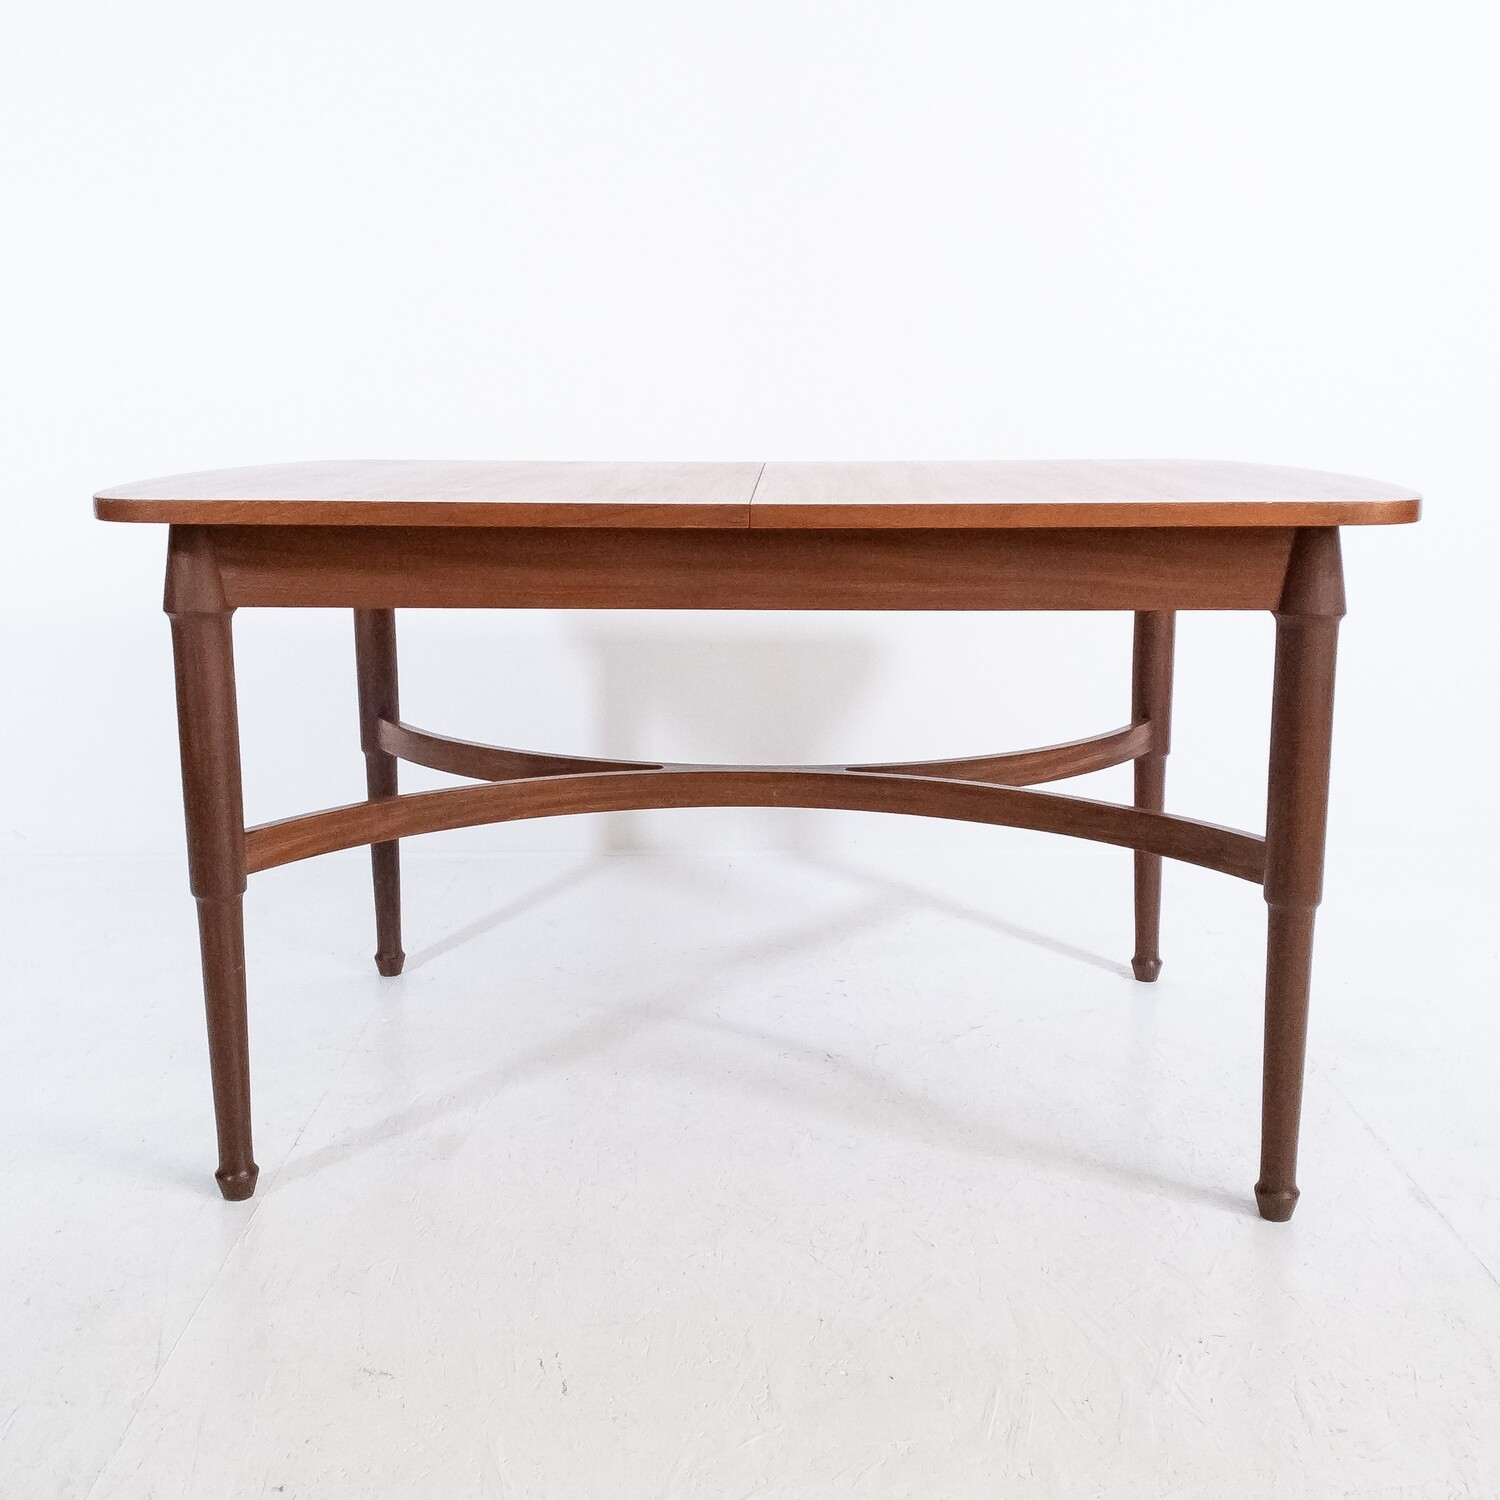 Extendable oval table in teak